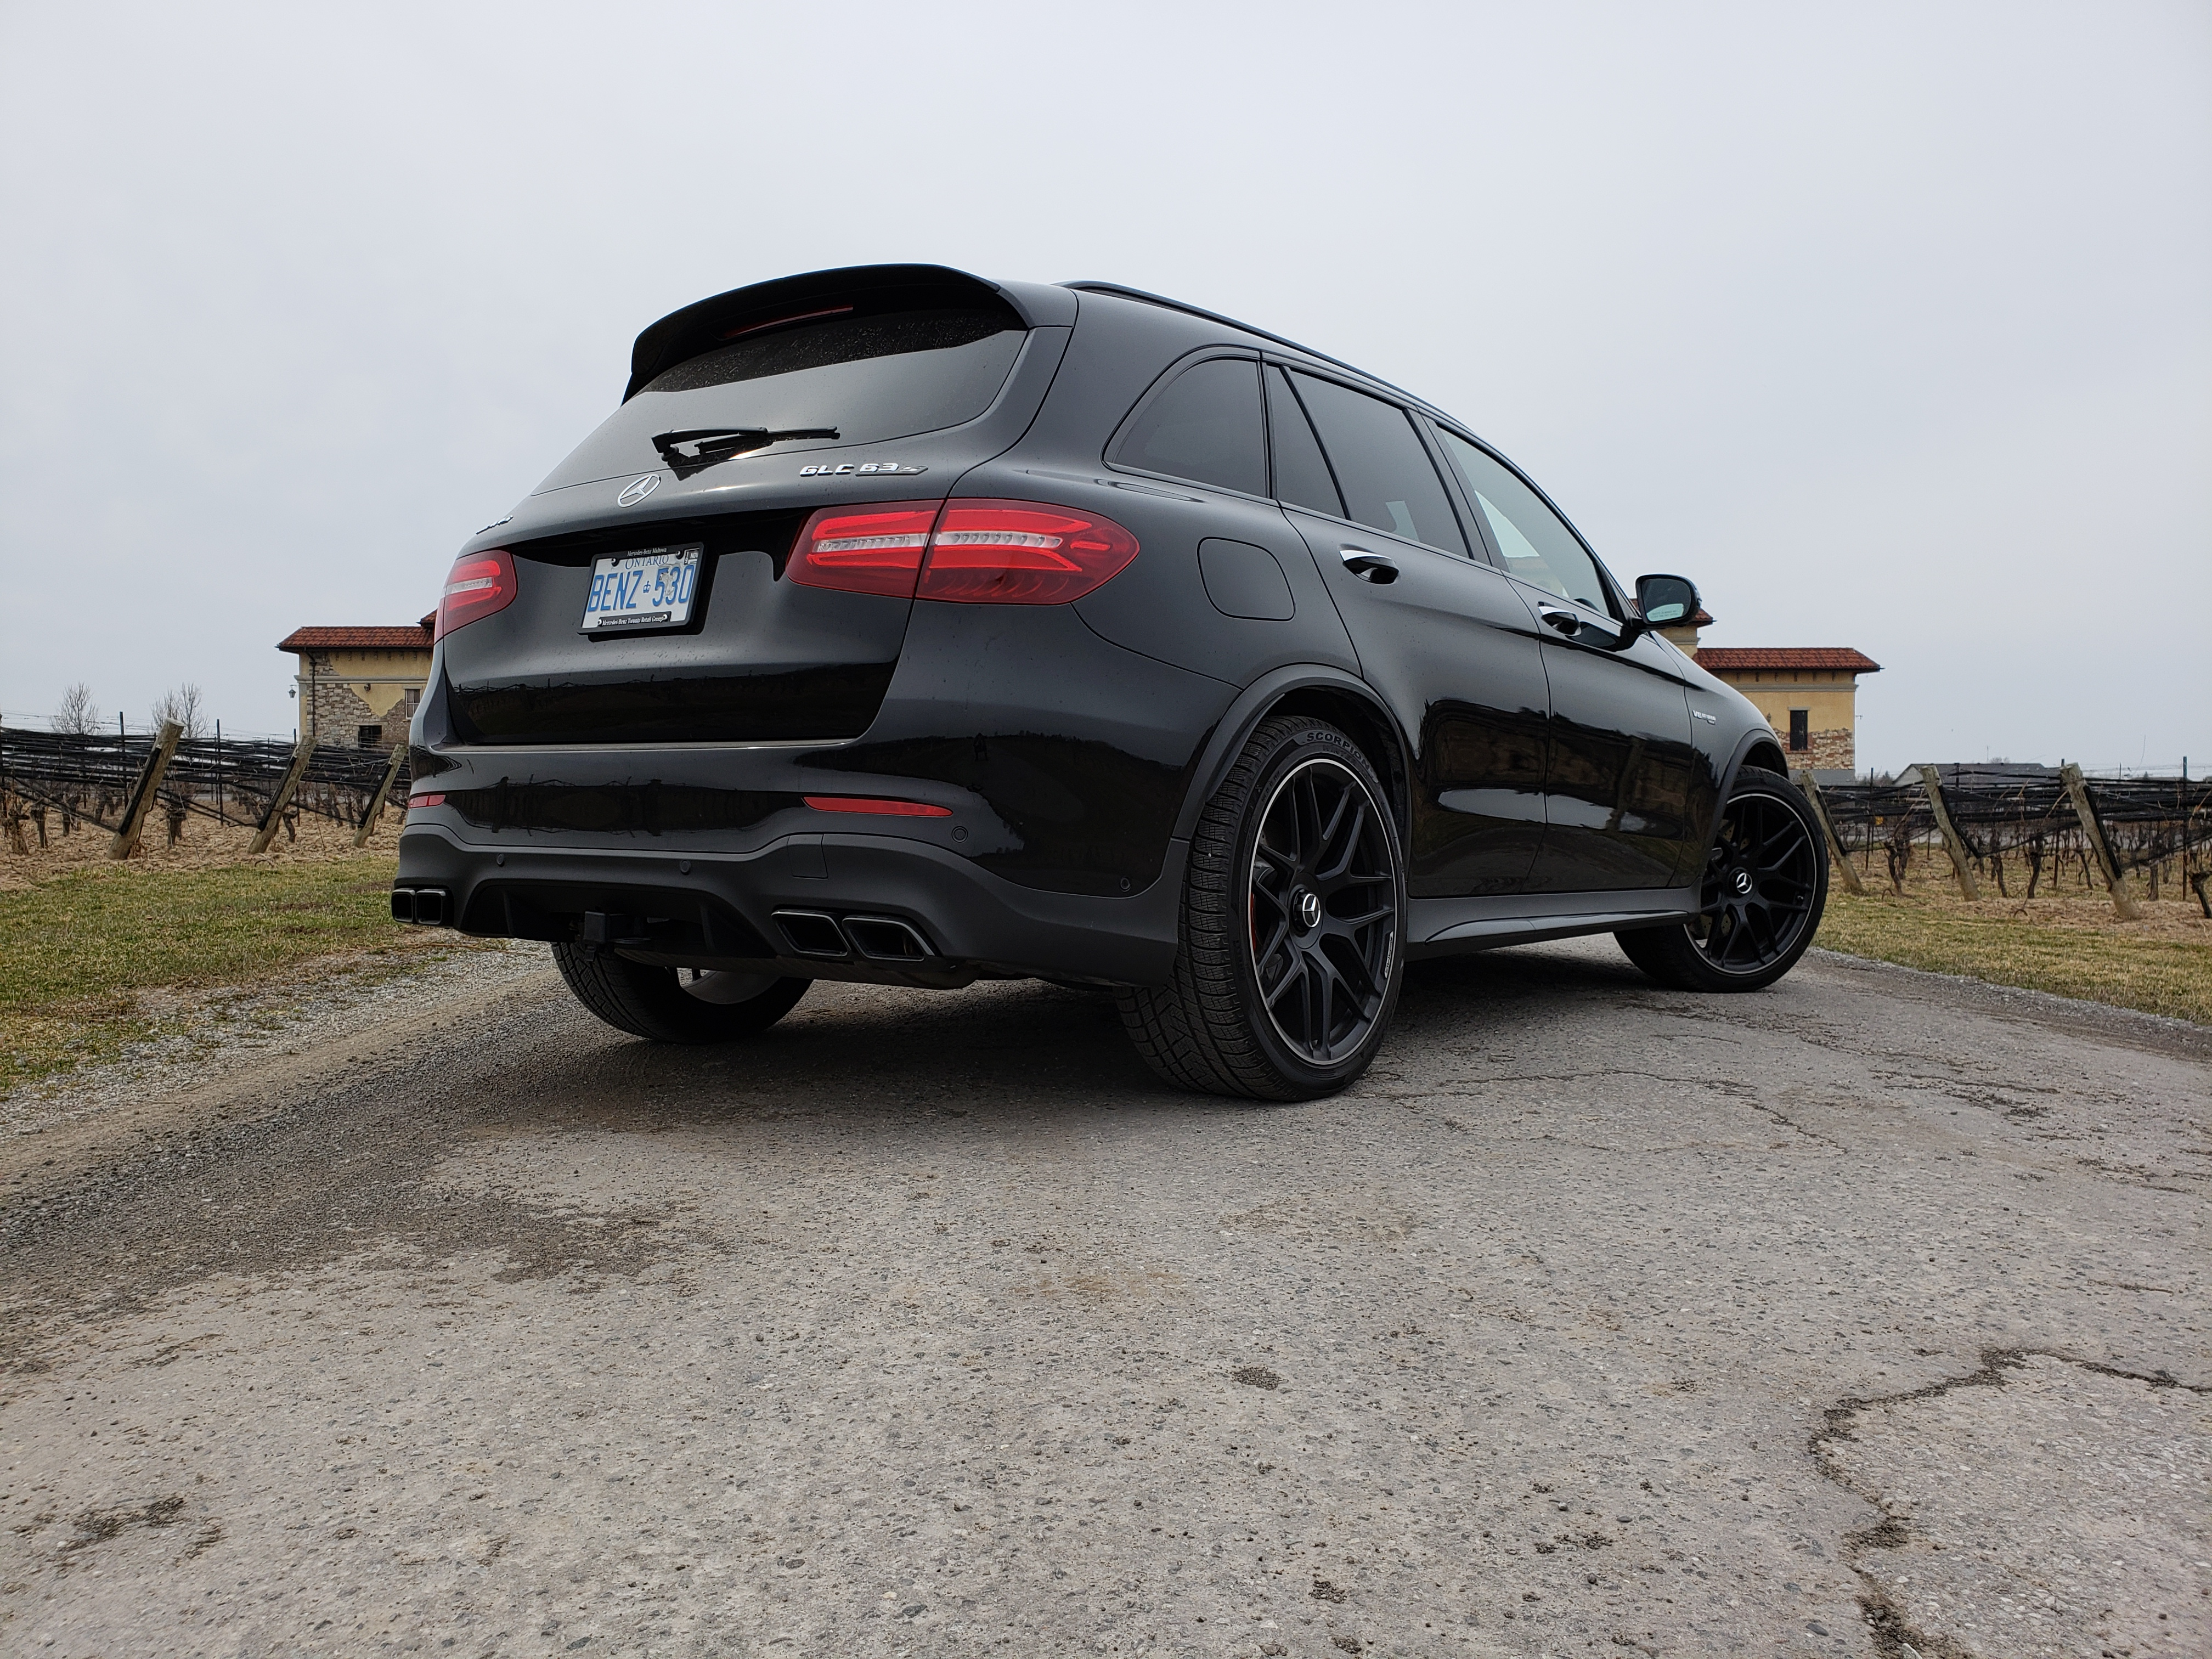 Review 2019 Mercedes-AMG GLC 63 S